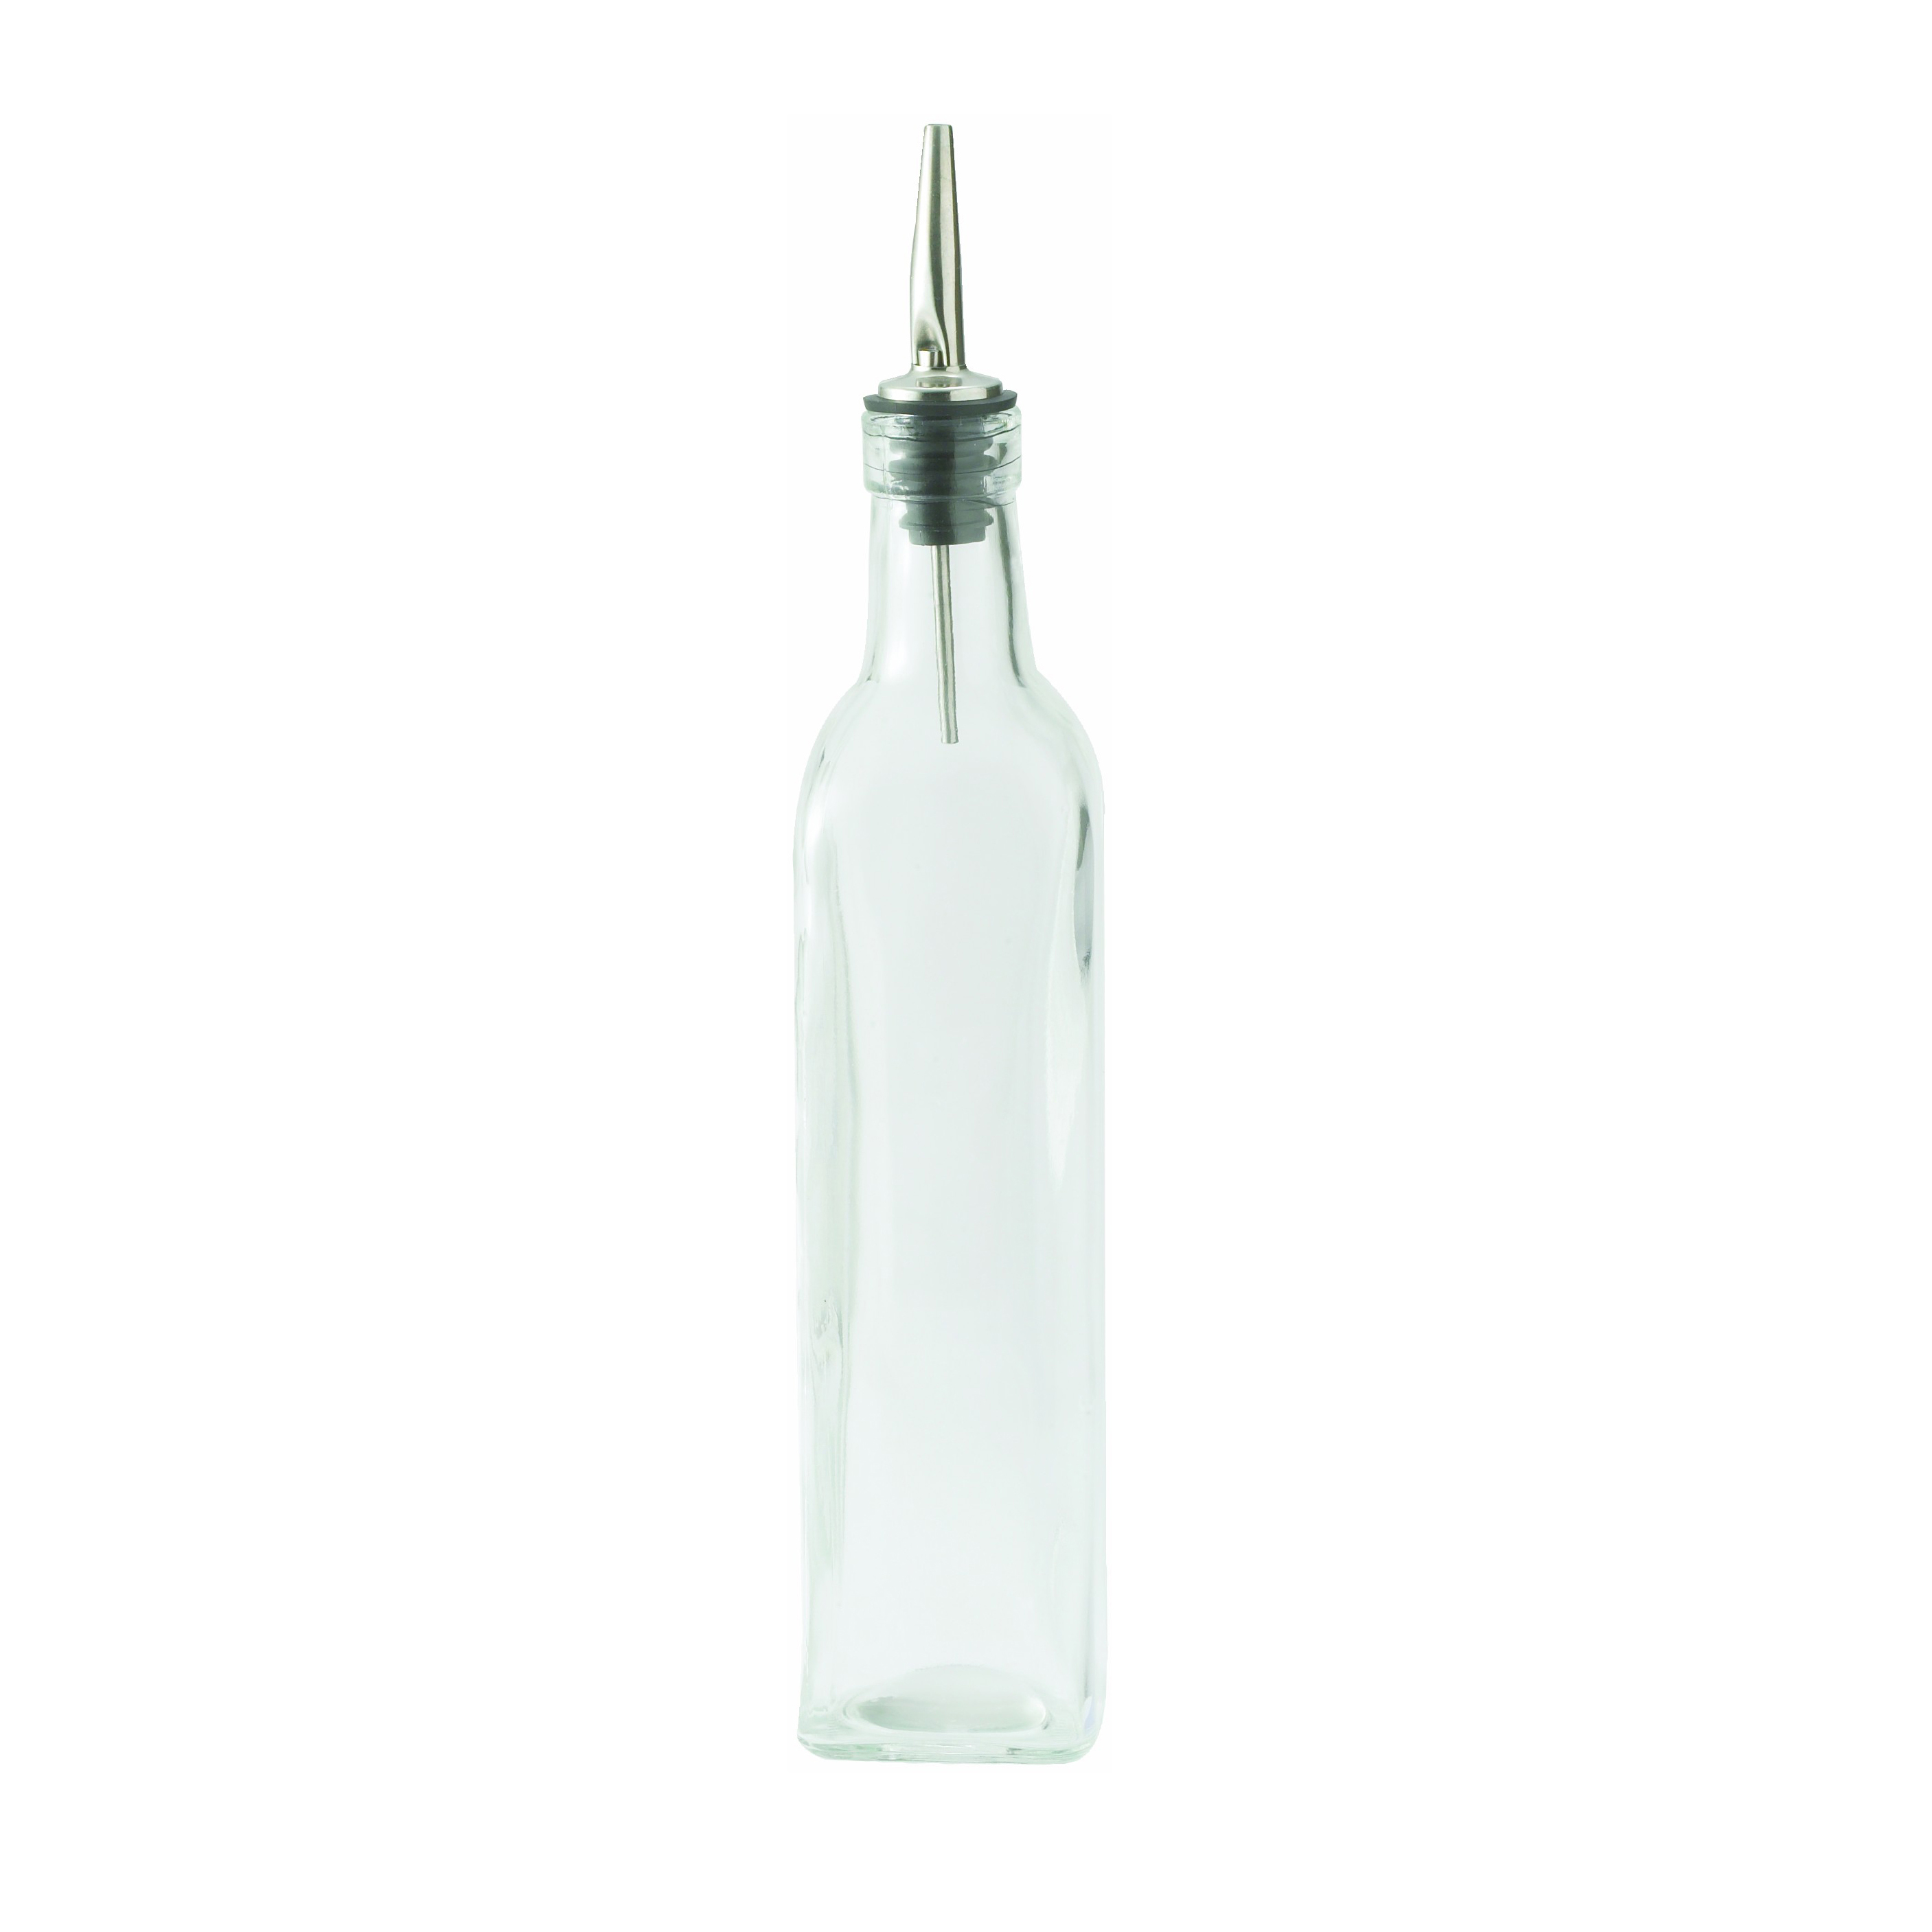 Winco GOB-16 oil & vinegar cruet bottle